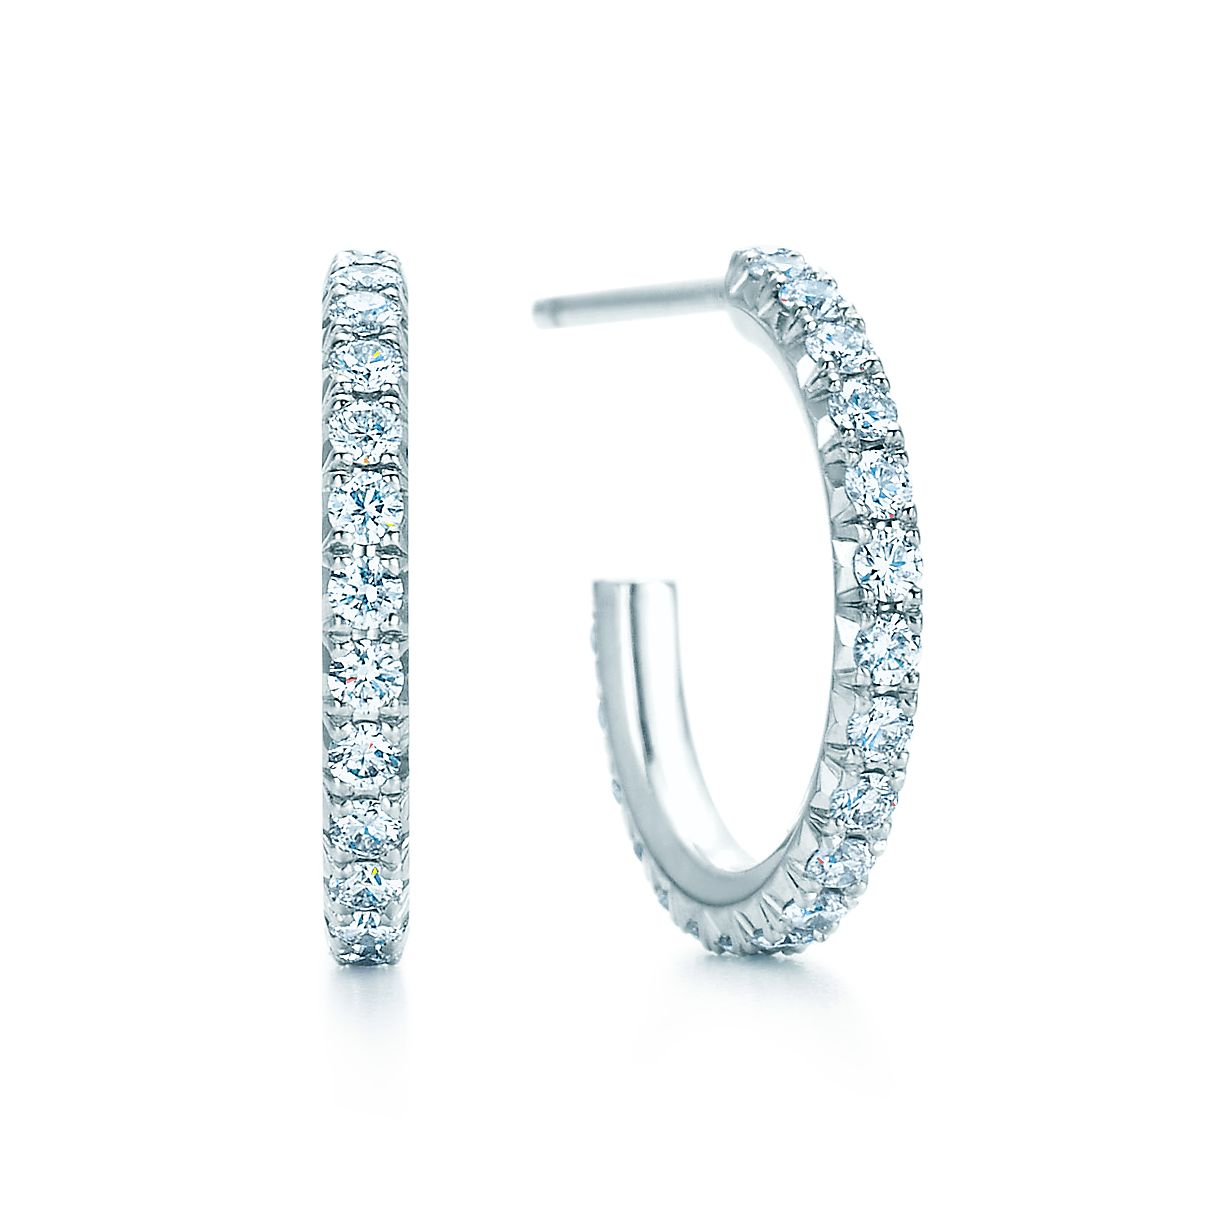 Tiffany Metro Hoop Earrings